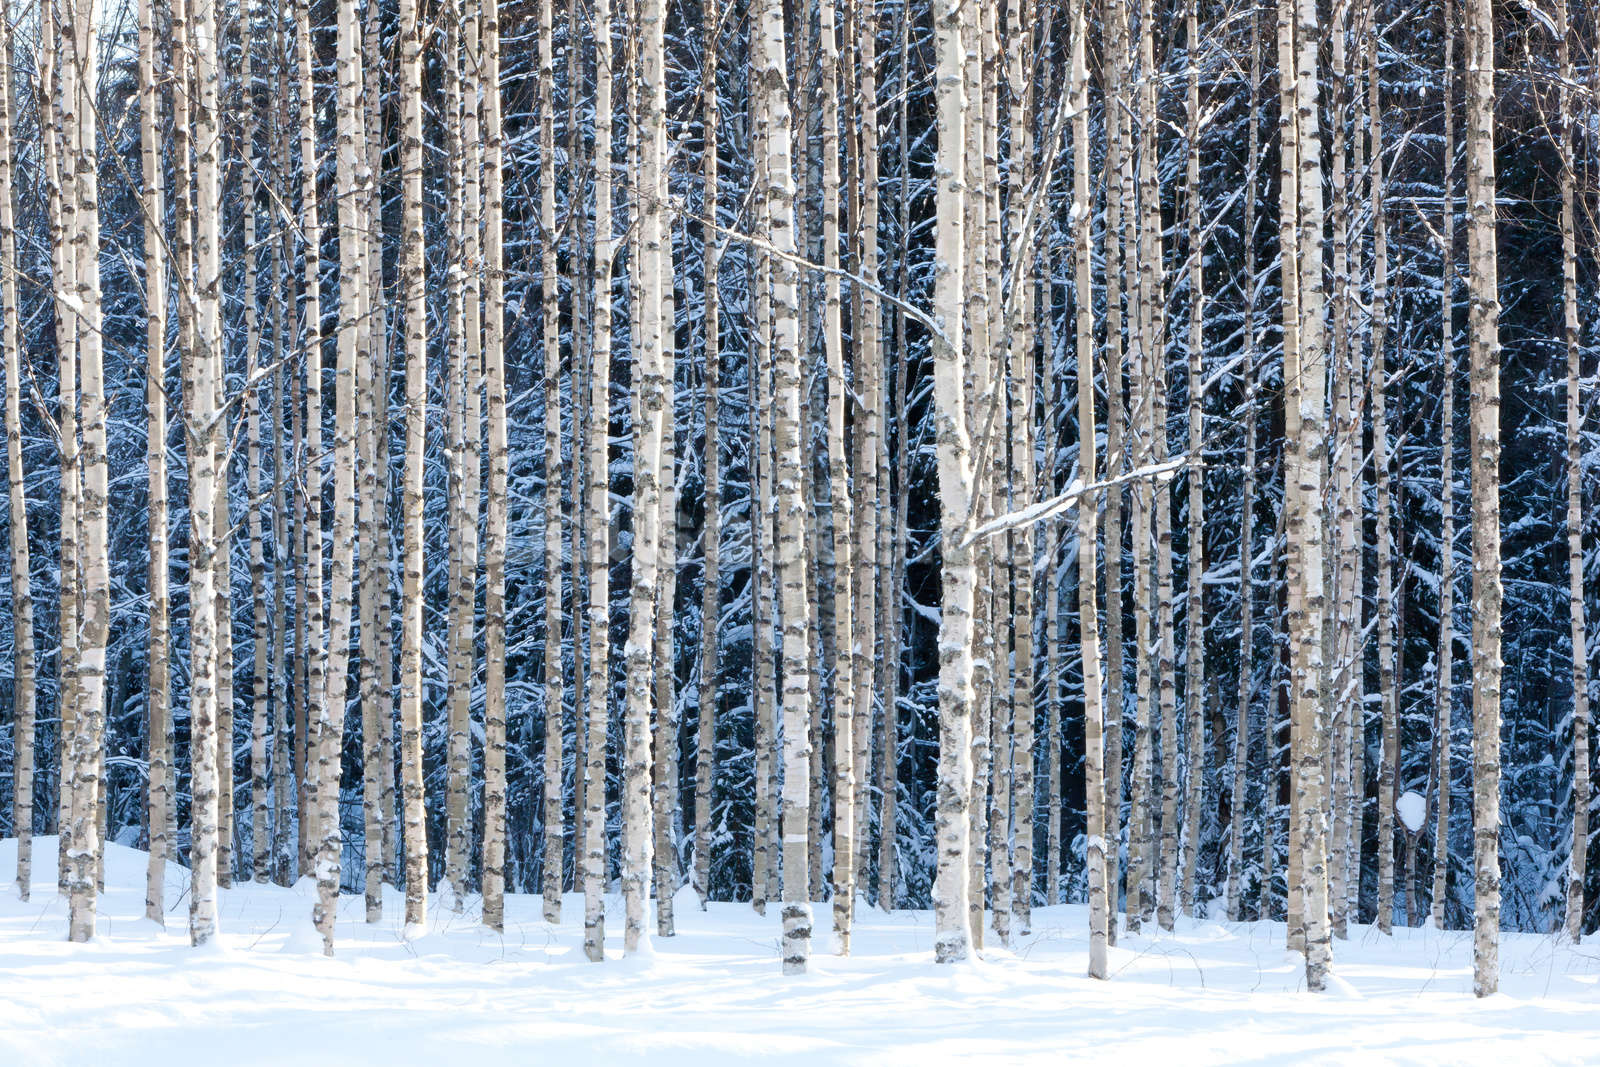 Snowy Birch Forest Wallpaper Mural